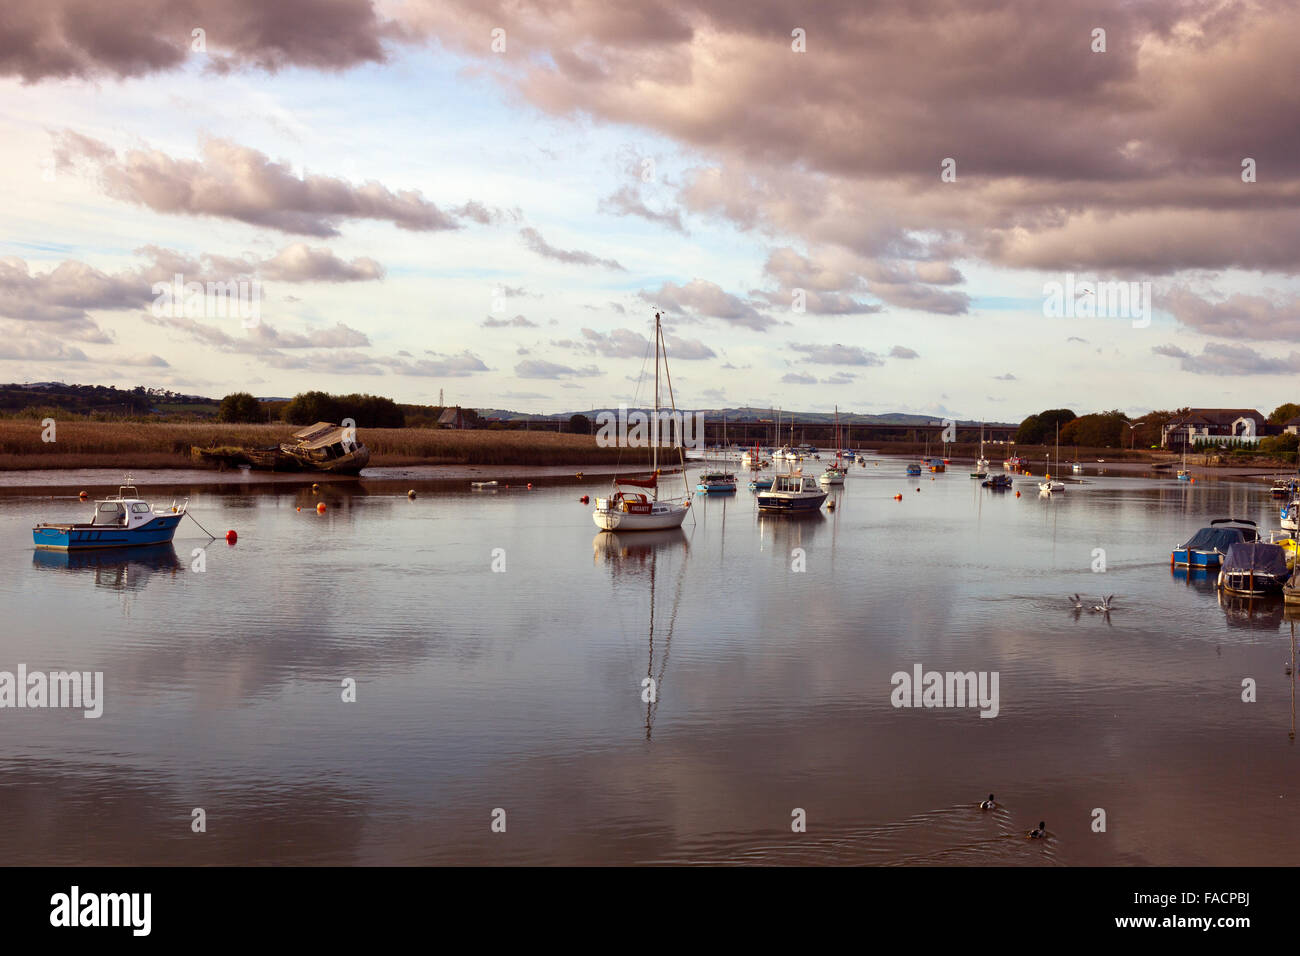 A collection of yachts and motor boats and their reflections moored in the River Exe at Topsham, Devon, England, - Stock Image